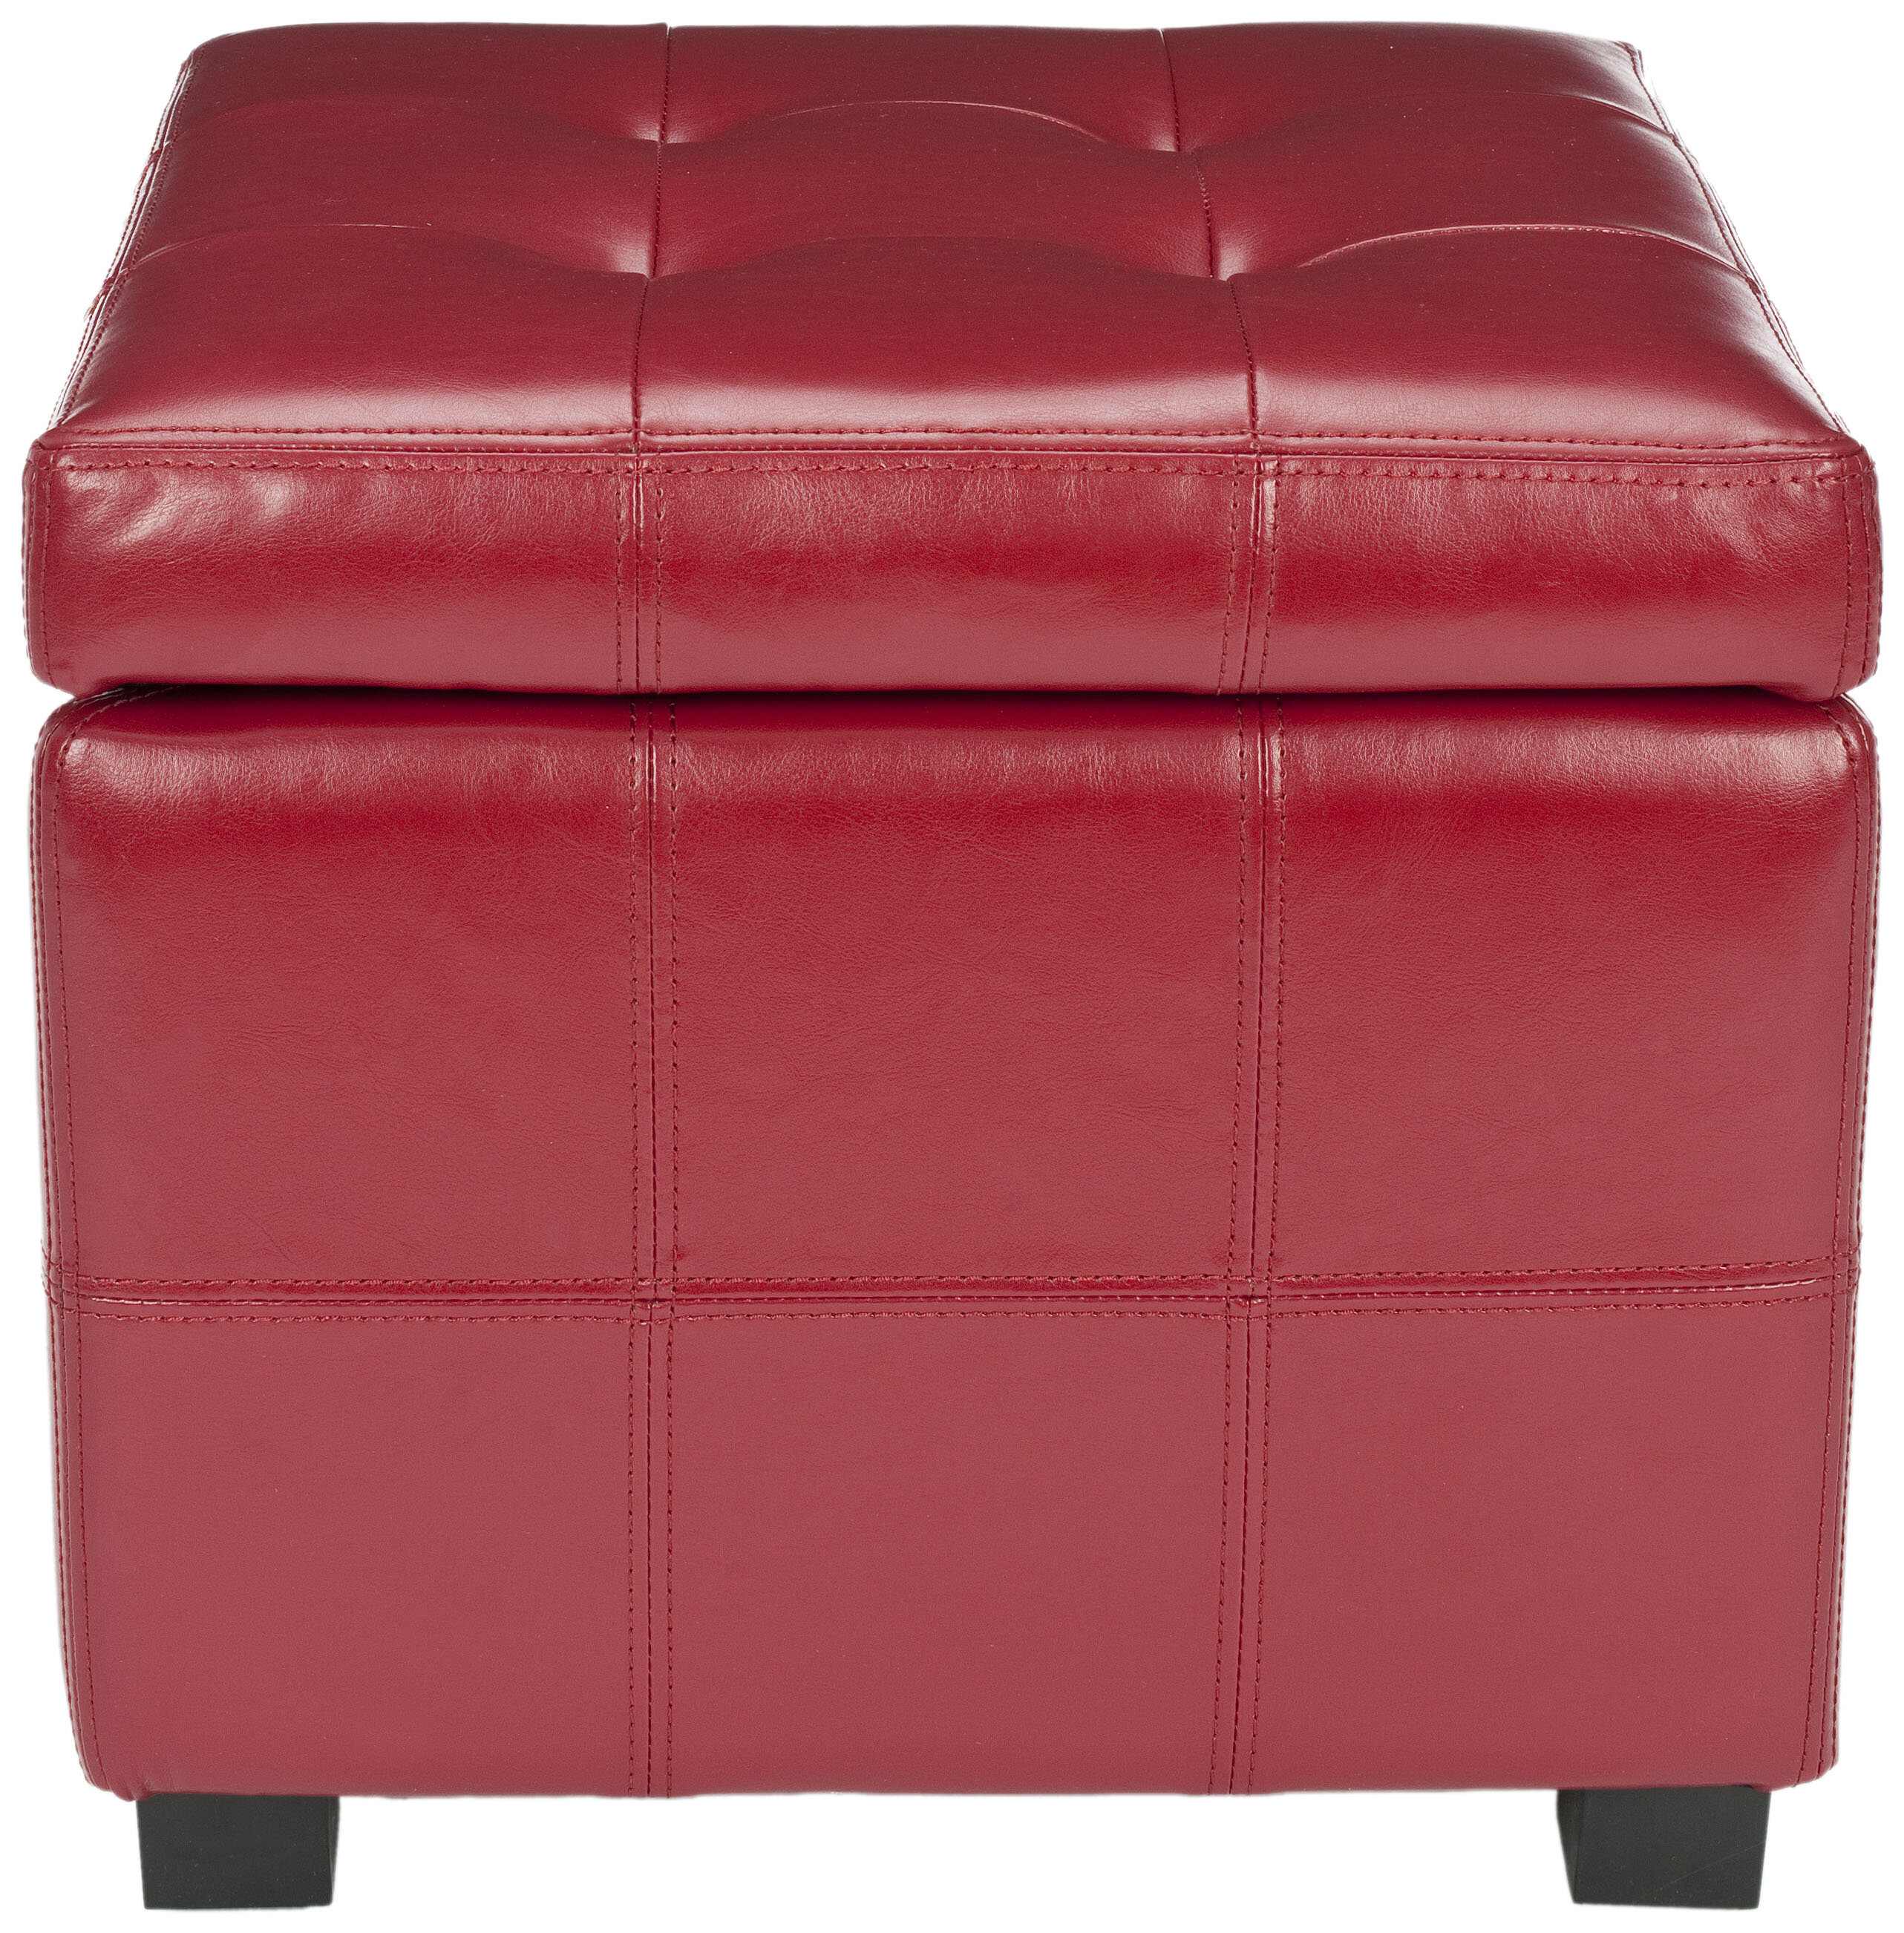 Ordinaire Safavieh William Storage Ottoman U0026 Reviews | Wayfair